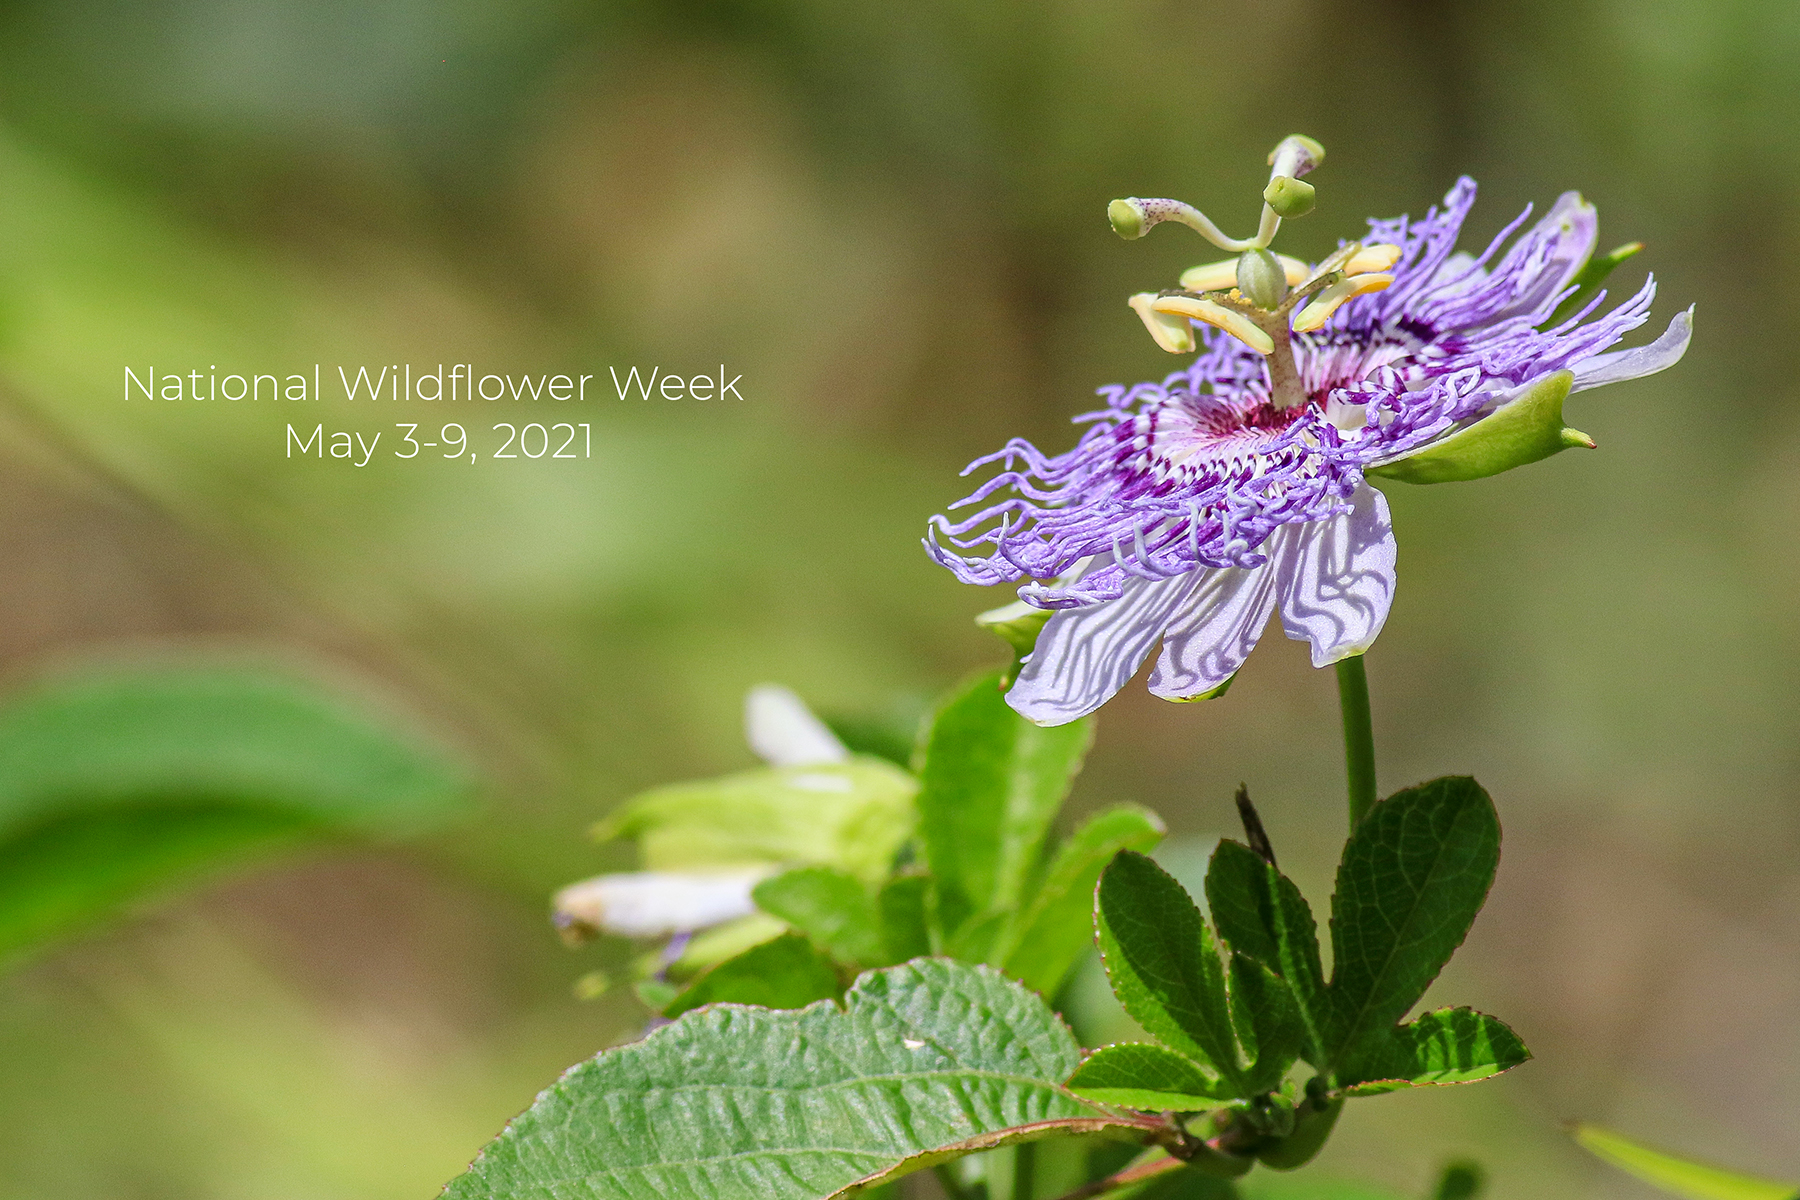 National Wildflower Week is May 3-9